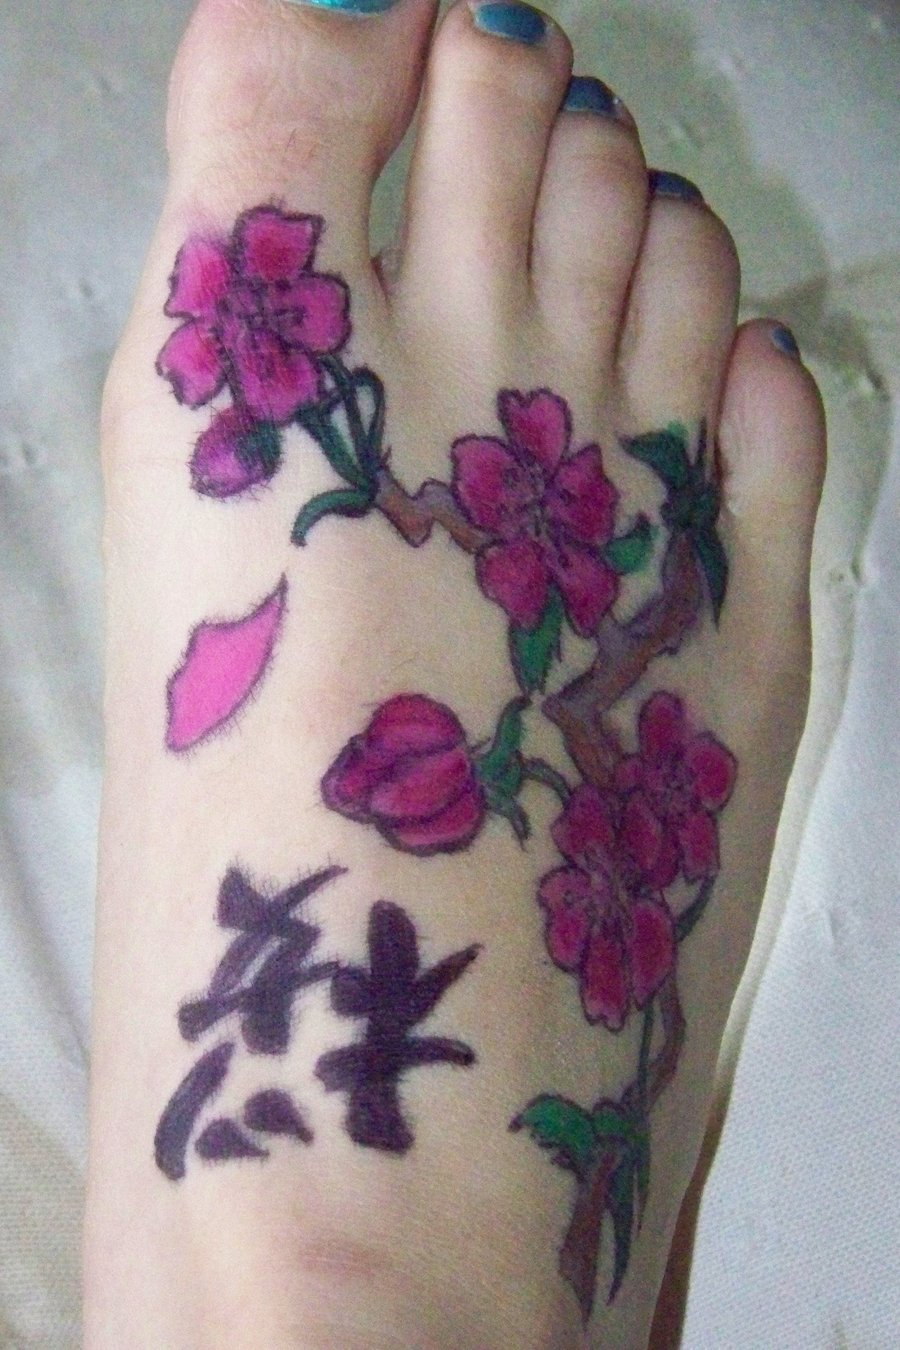 Cherry Blossom Tattoo With Chinese Letters On Foot